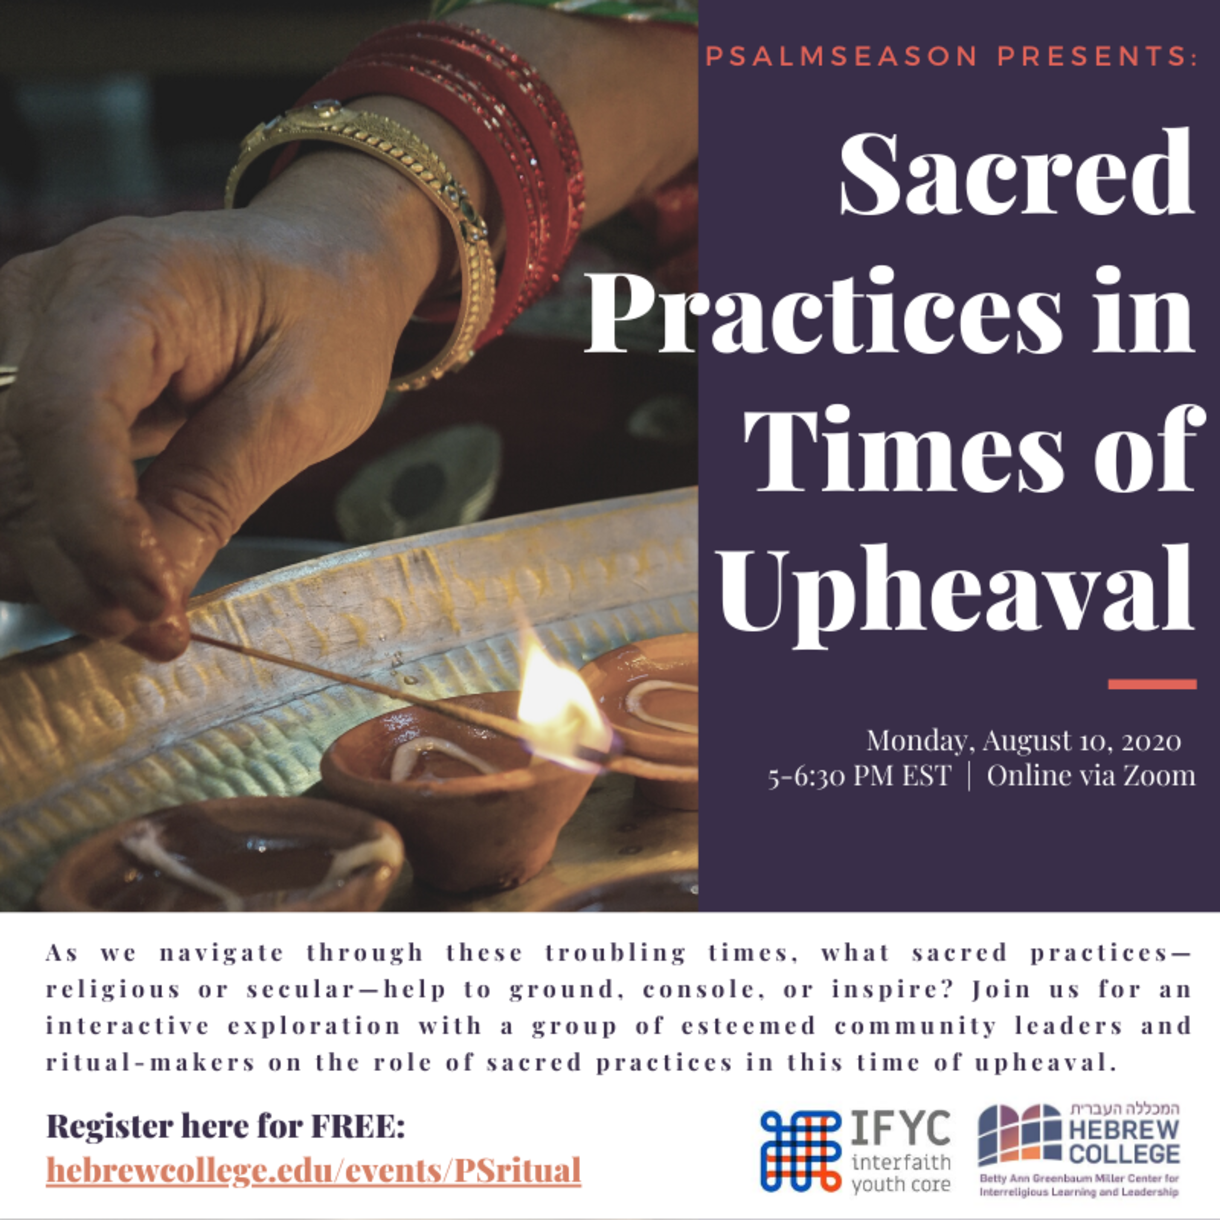 PsalmSeason Event: Sacred Practices in Times of Upheaval